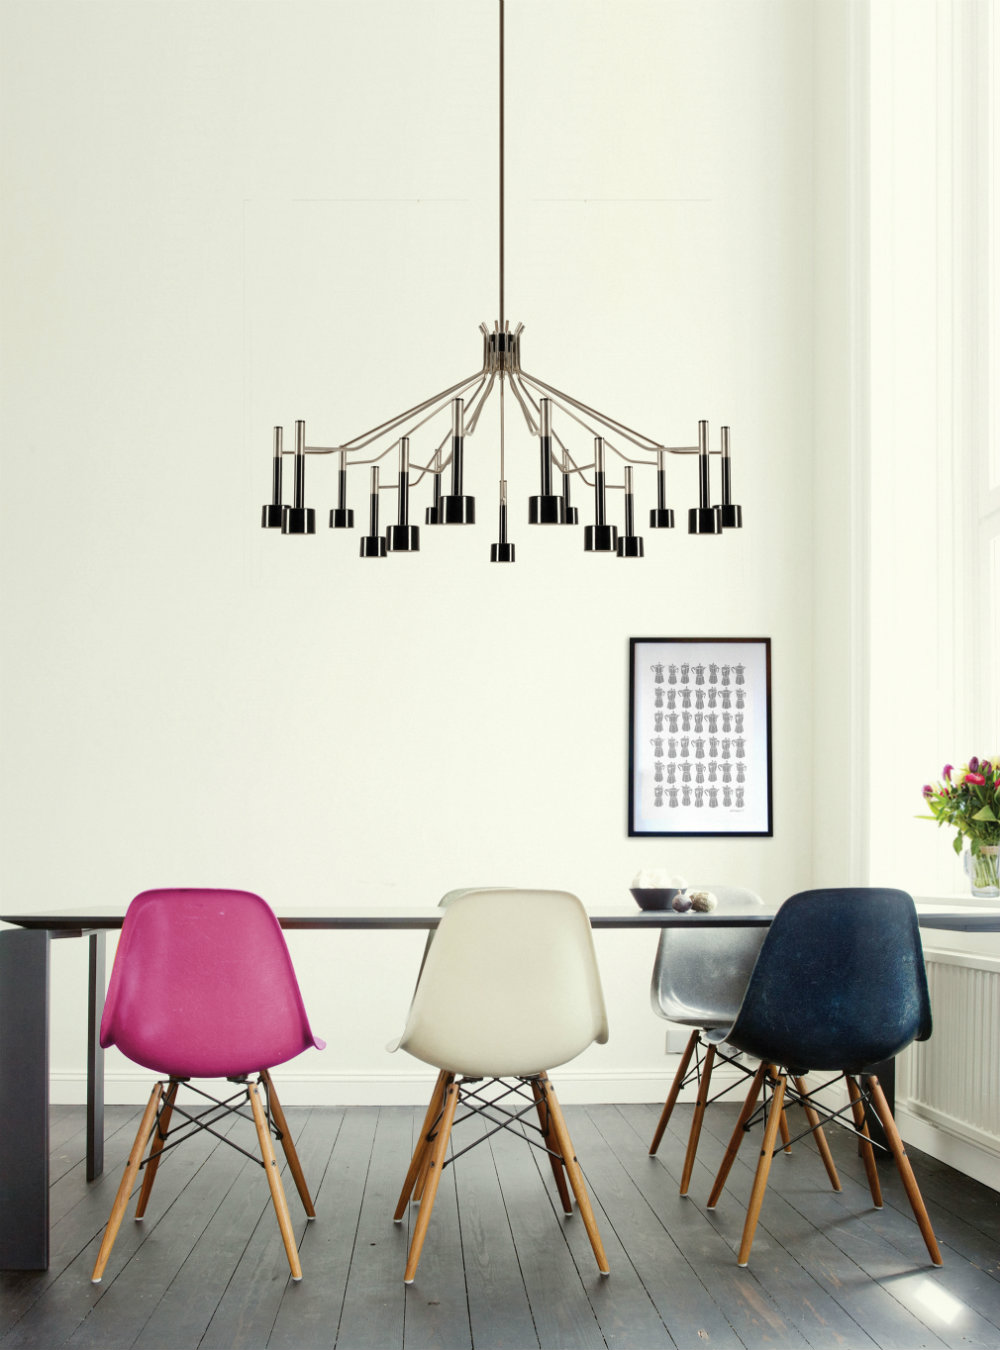 Trending Product An Iconic Round Chandelier with a Mid-Century Design 1